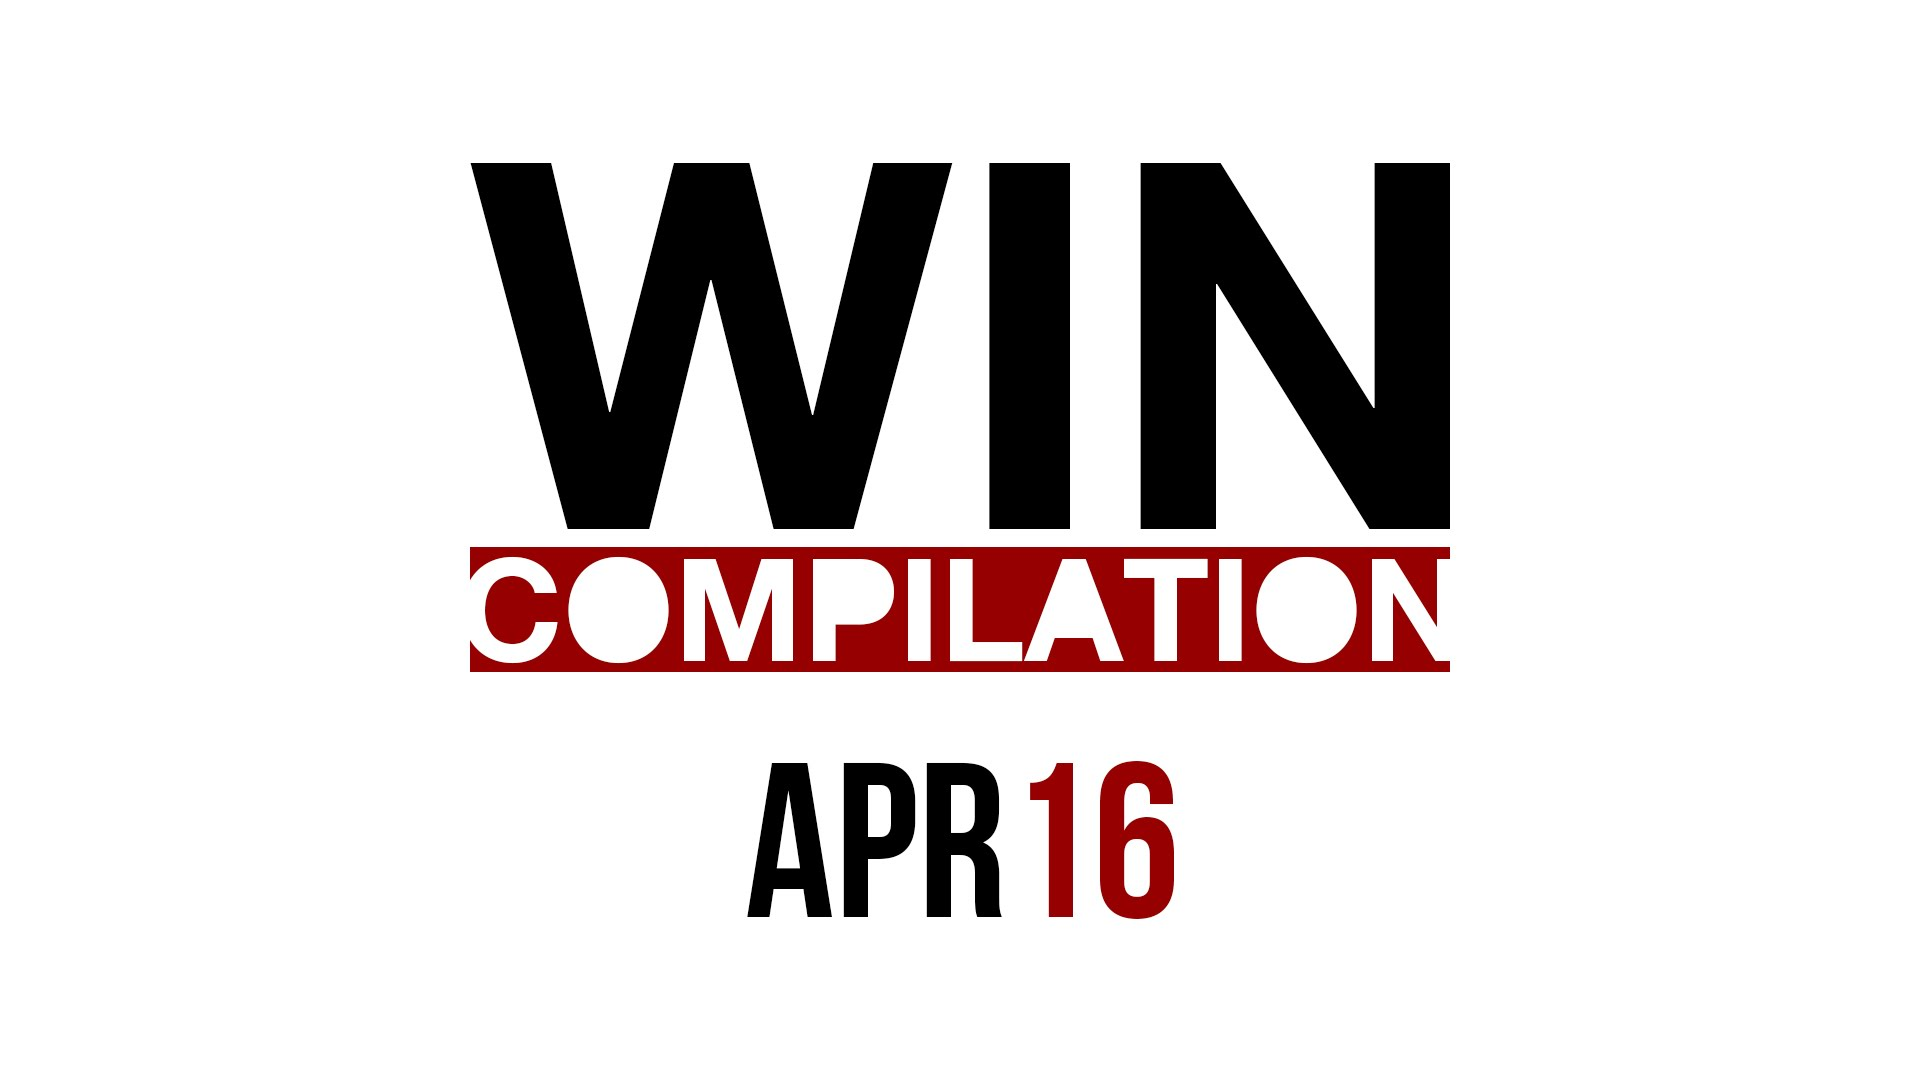 WIN Compilation April 2016